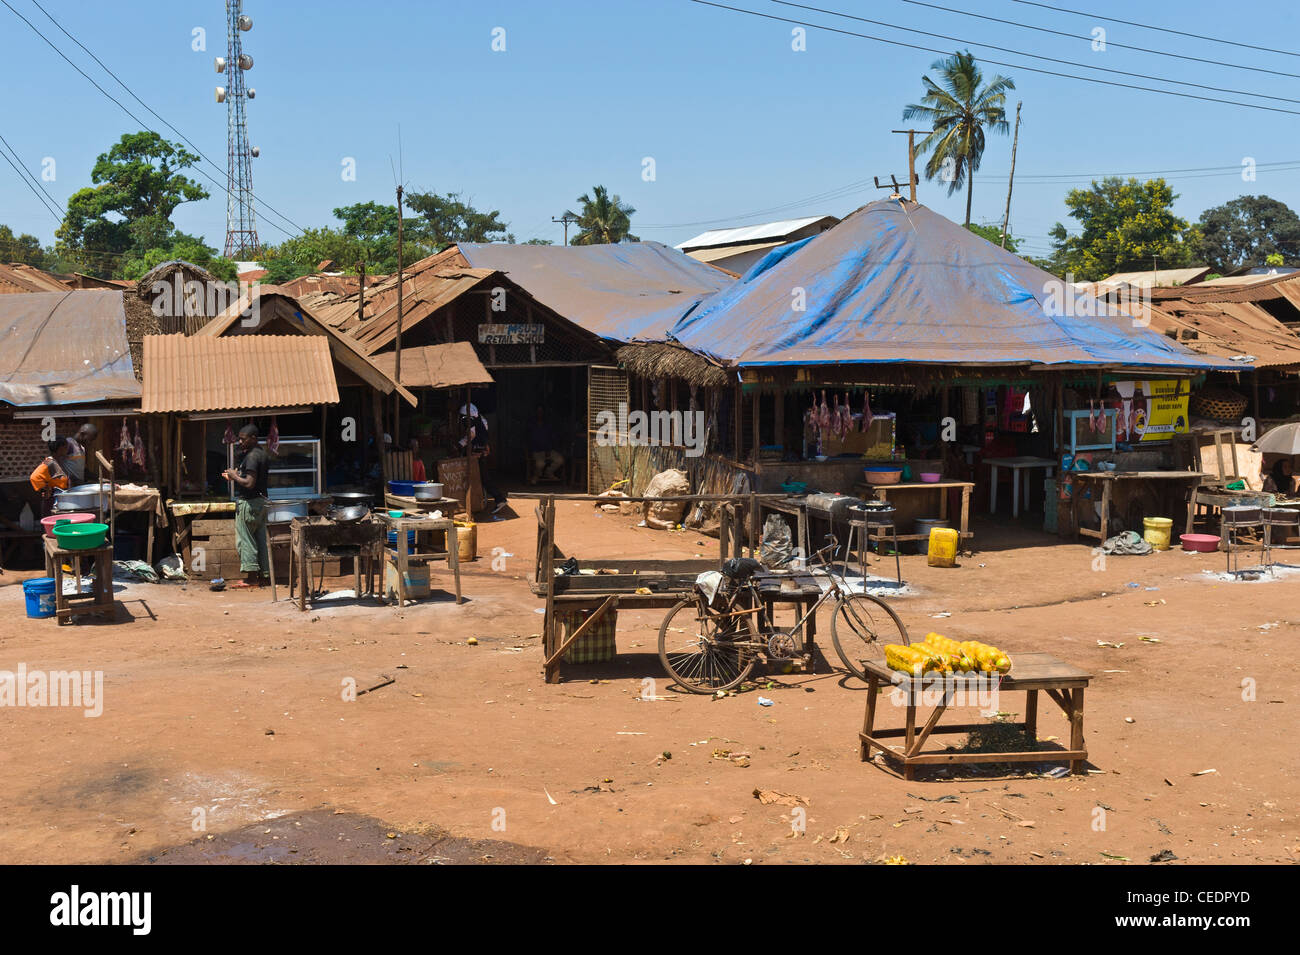 Shops and telecommunication tower in a village in Pwani Region Tanzania - Stock Image